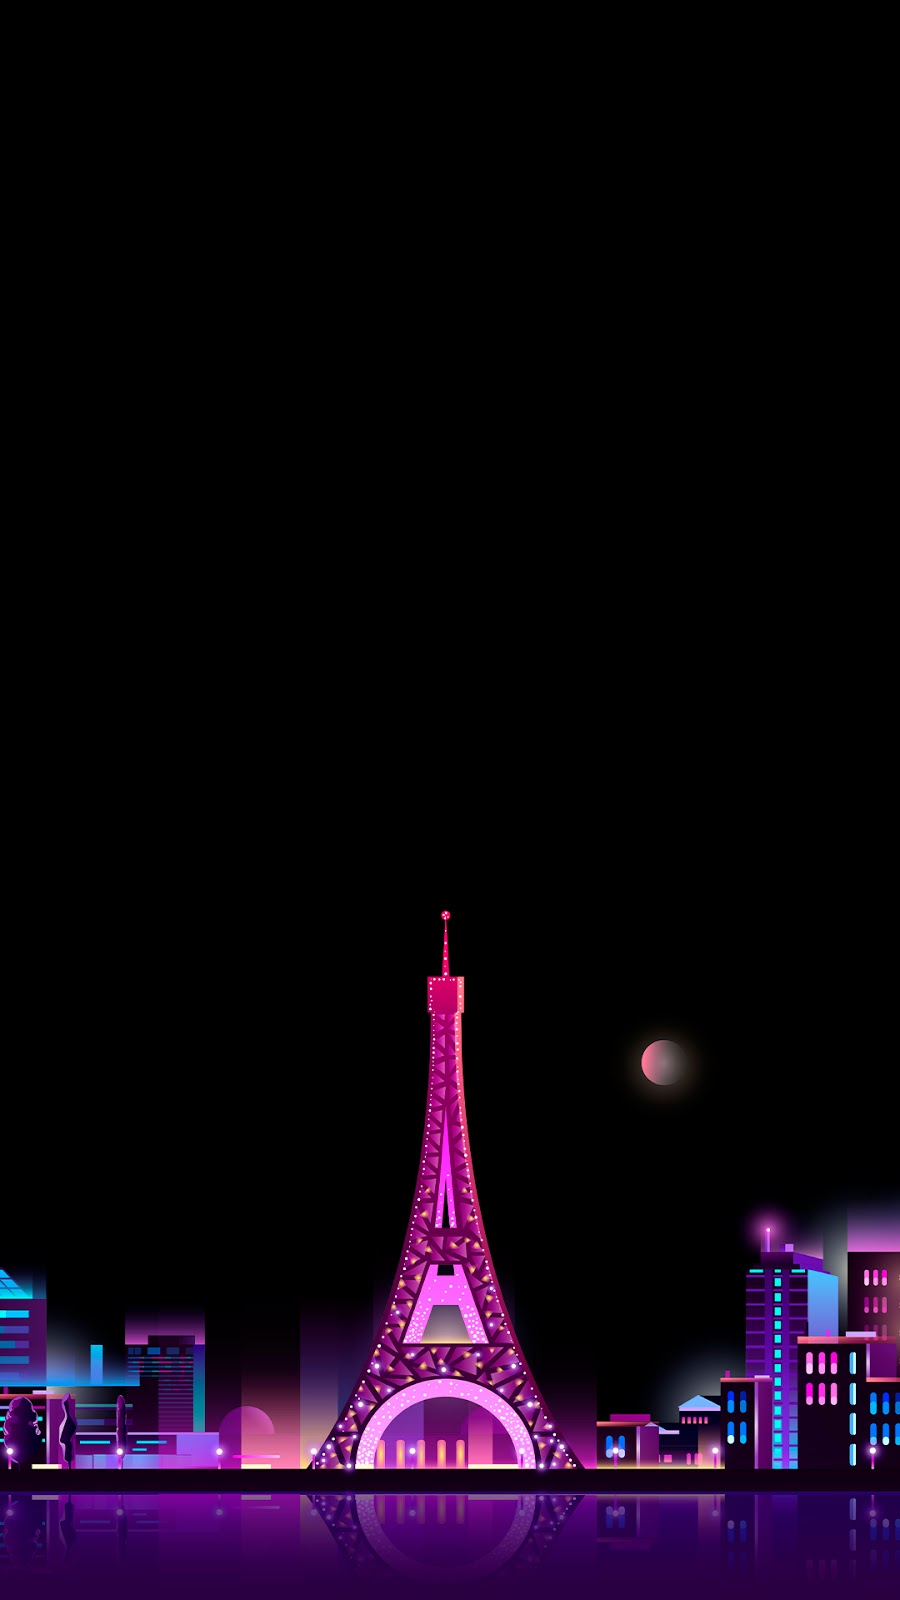 Wallpaper Hd Amoled Eiffel Tower